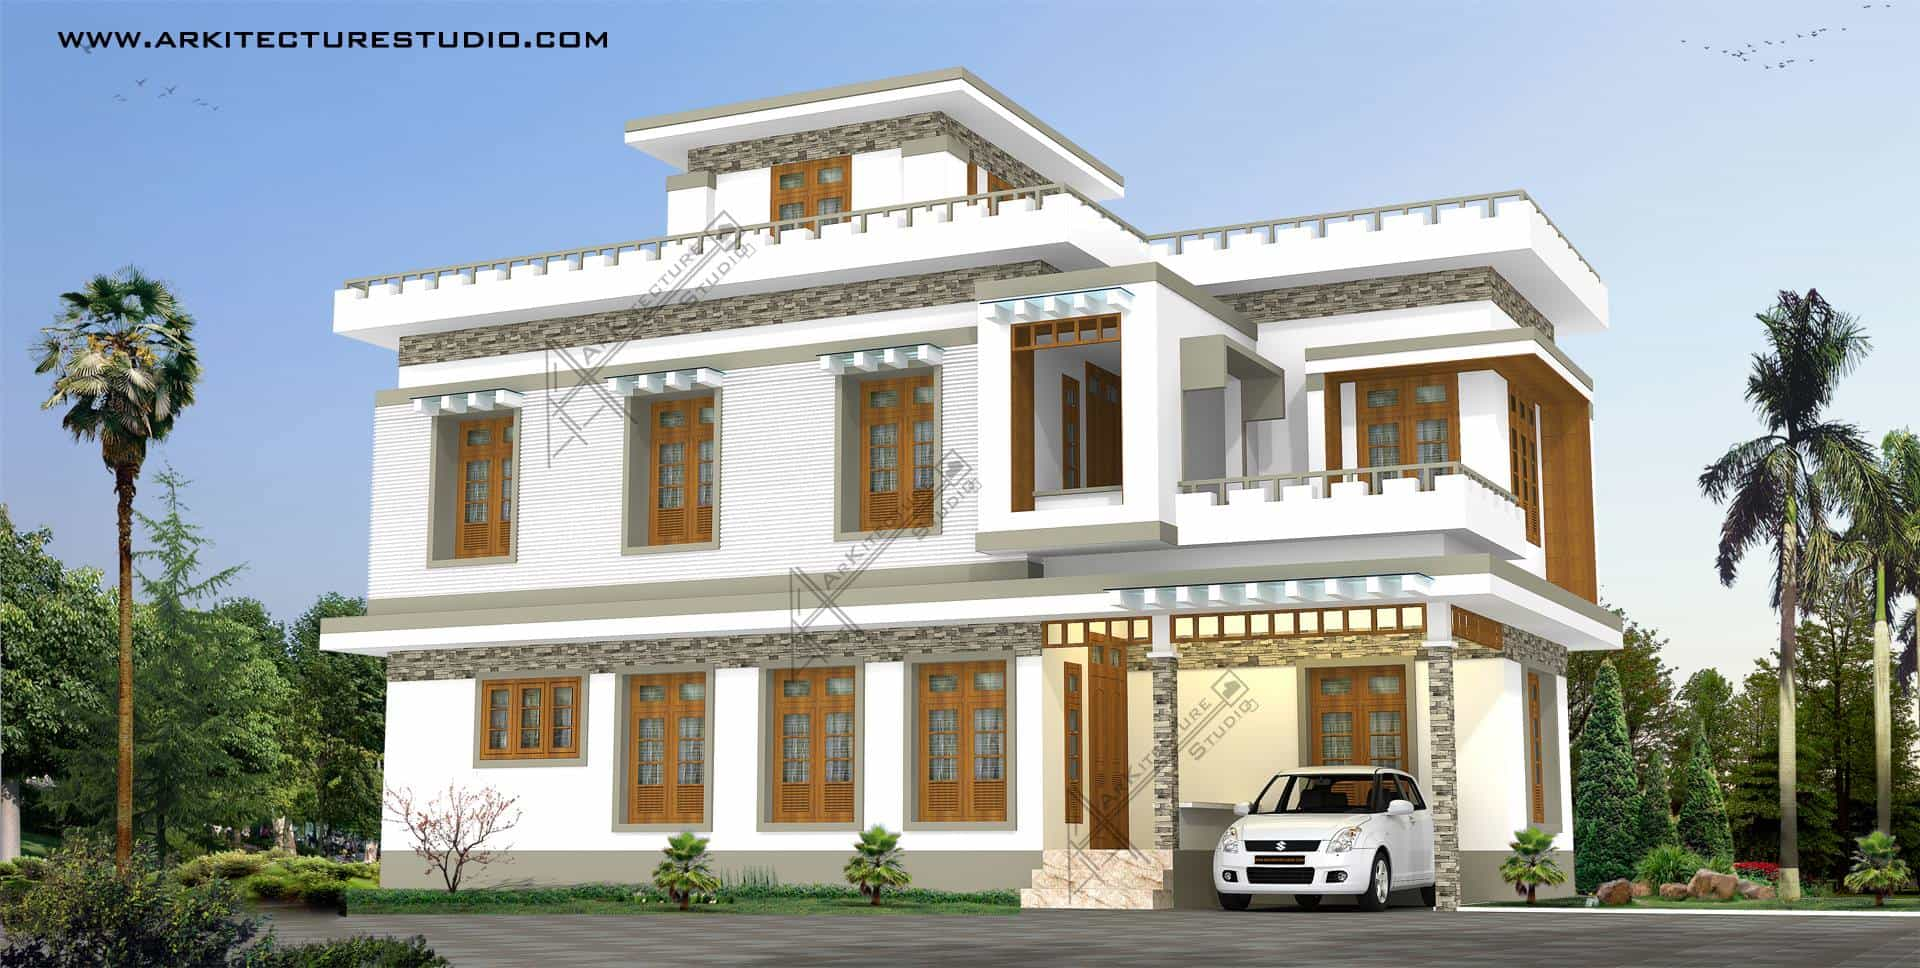 1d2ddbf64795a41e Split Level Ranch House Interior Split Ranch House Floor Plans furthermore How To Transform A Semi Detached House besides Different House Designs Pakistan furthermore Modular Addition furthermore Smallhousekits. on small 2 story house plans